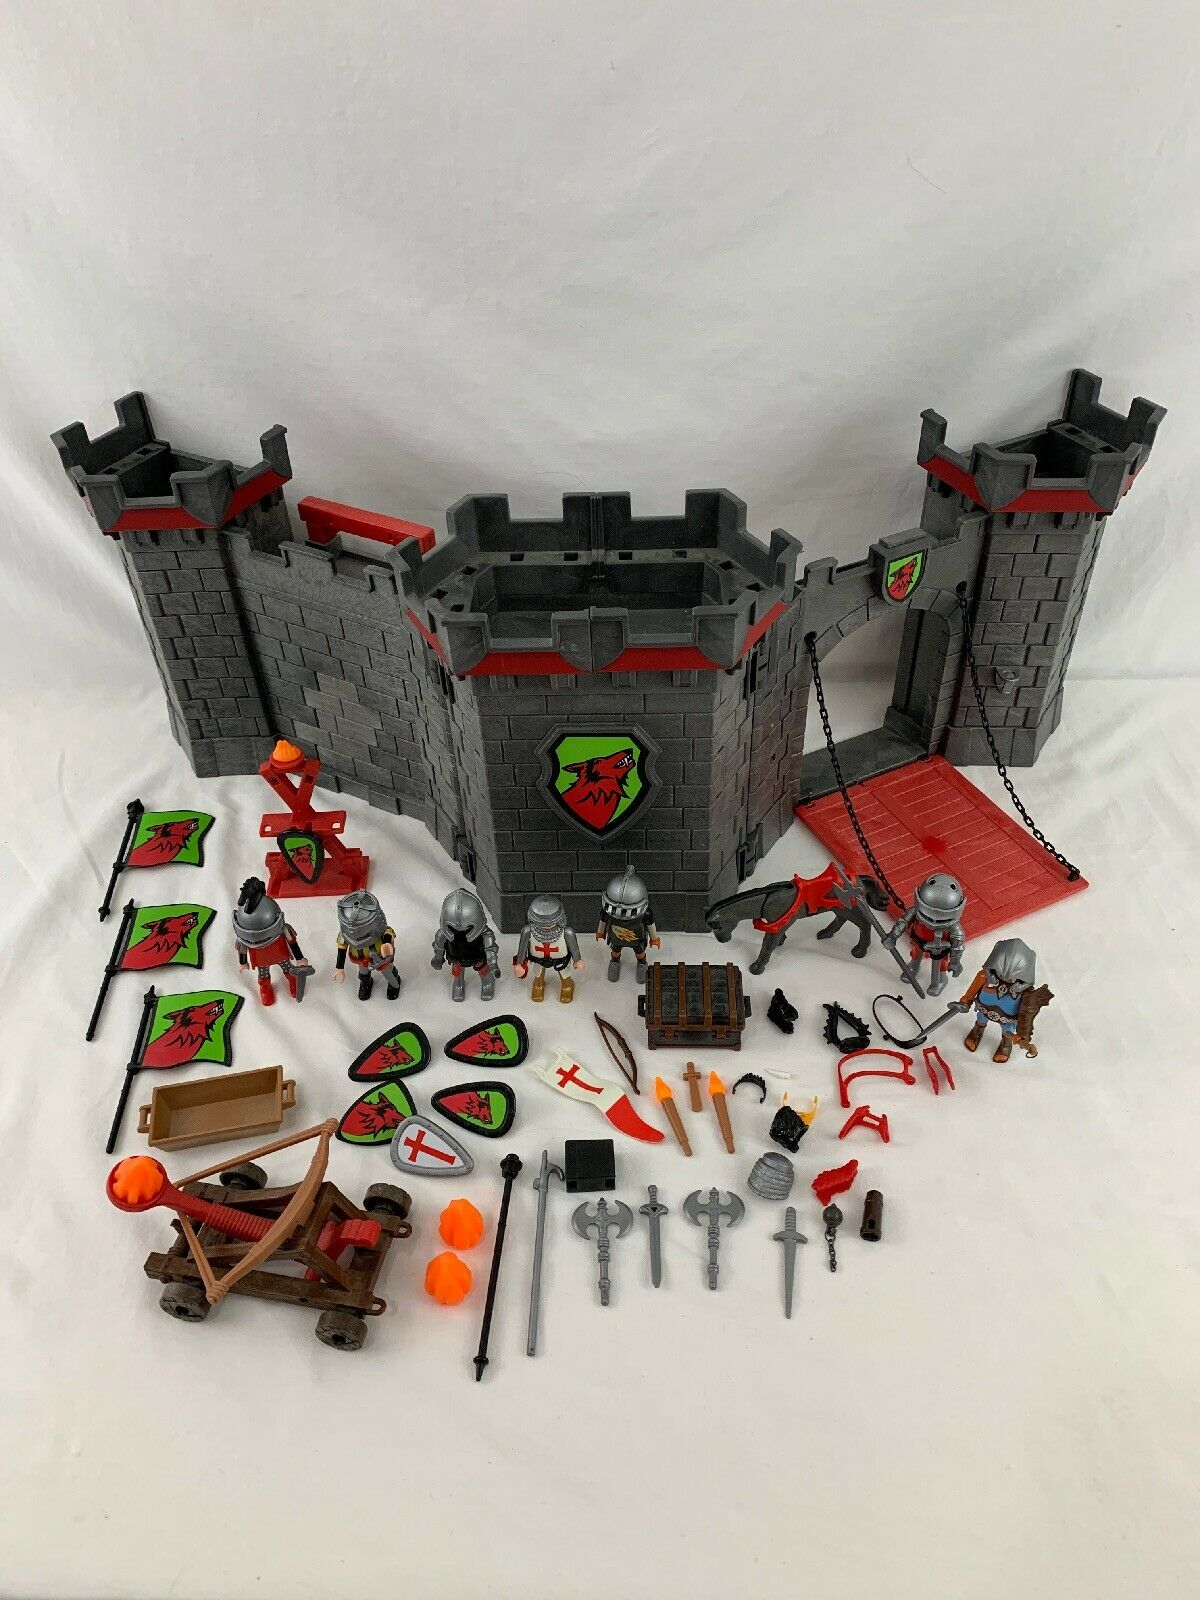 2007 Playmobil Knights Take Along Castle rosso Wolf Theme 5803 Play Mobil